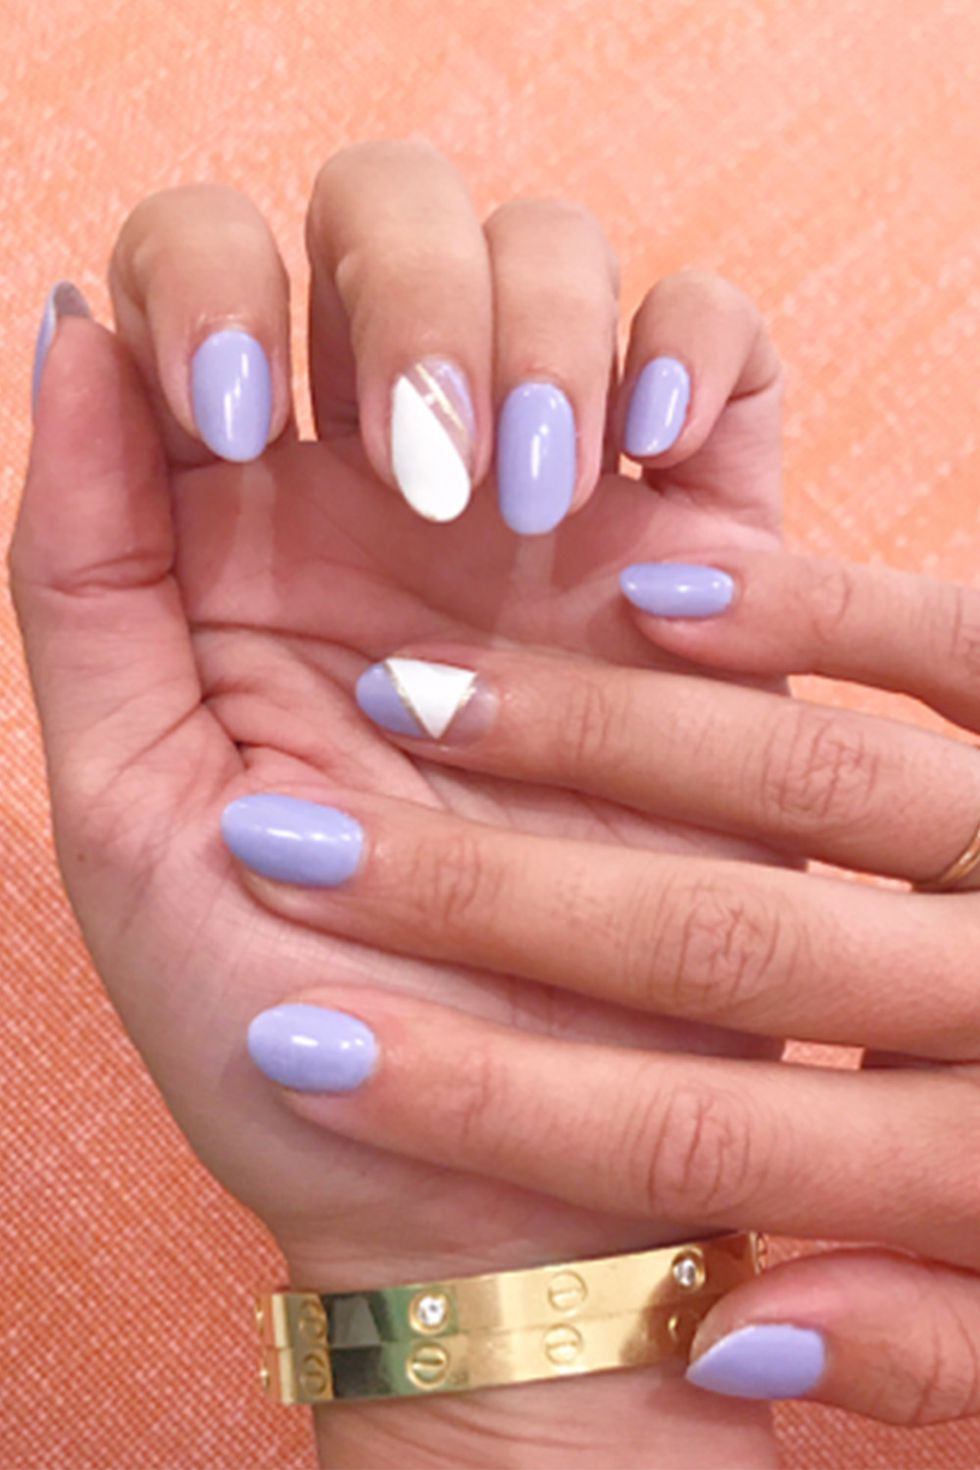 Lavender and White in an Almond Nail Design-vvpretty